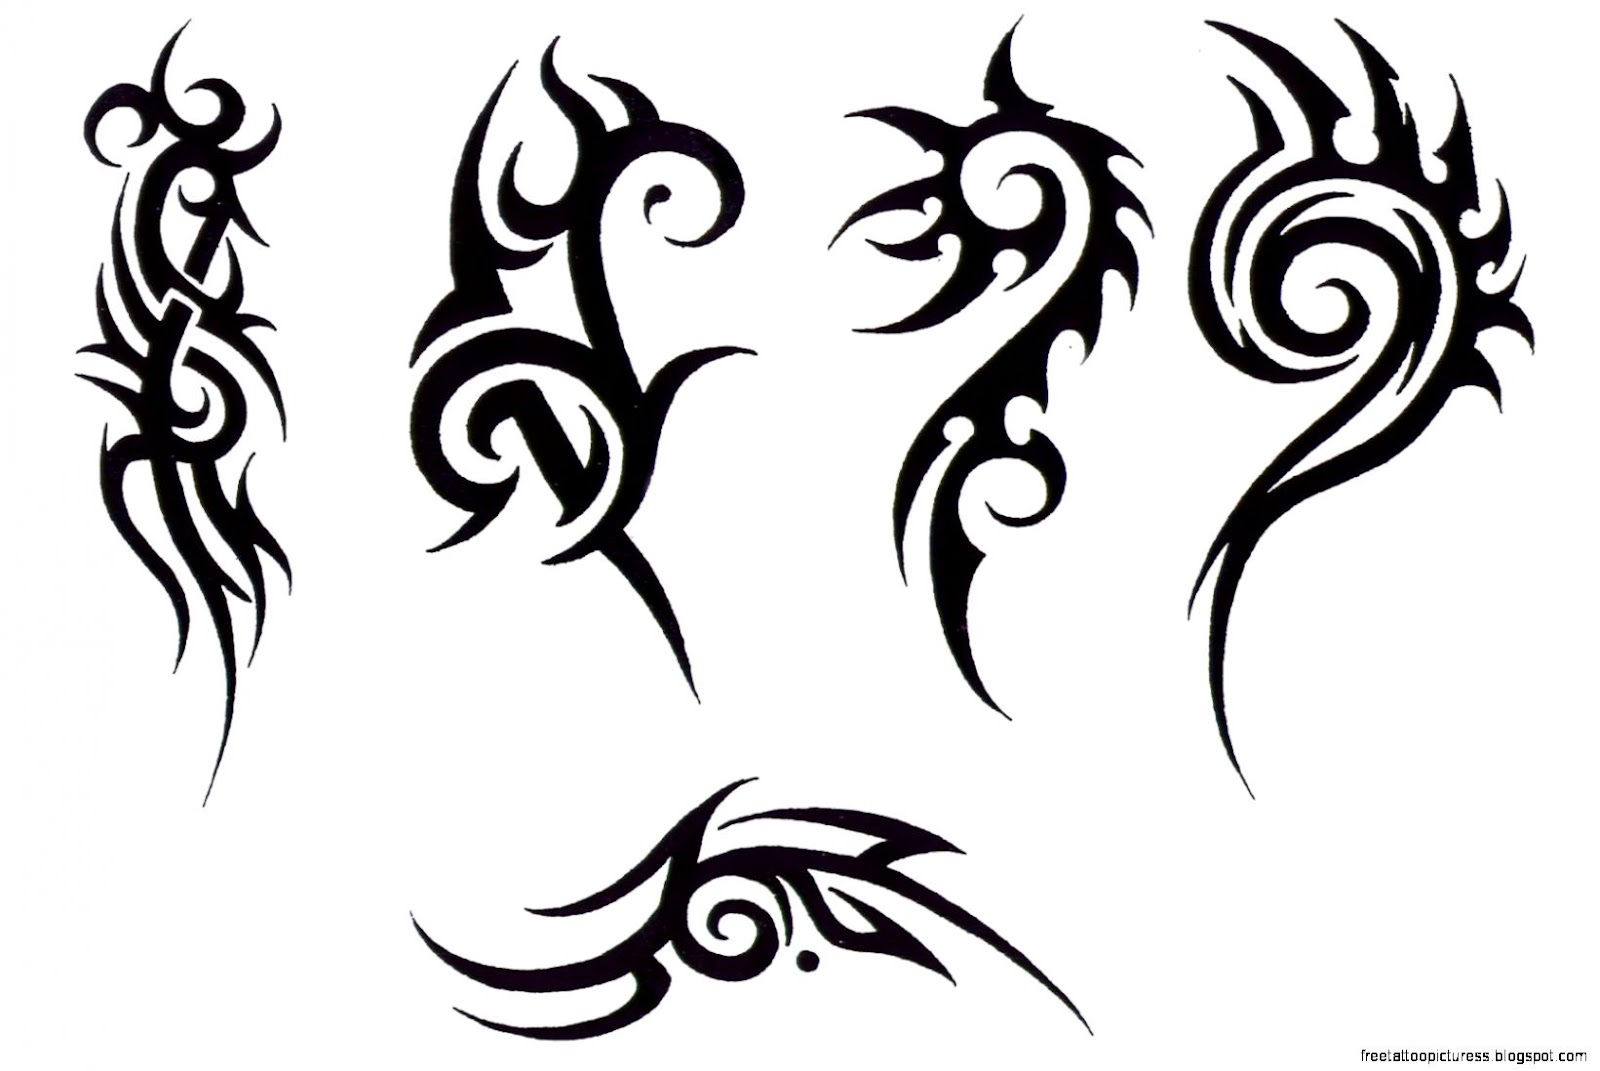 Tattoos I Might Consider by gregcaires on Pinterest  Tribal